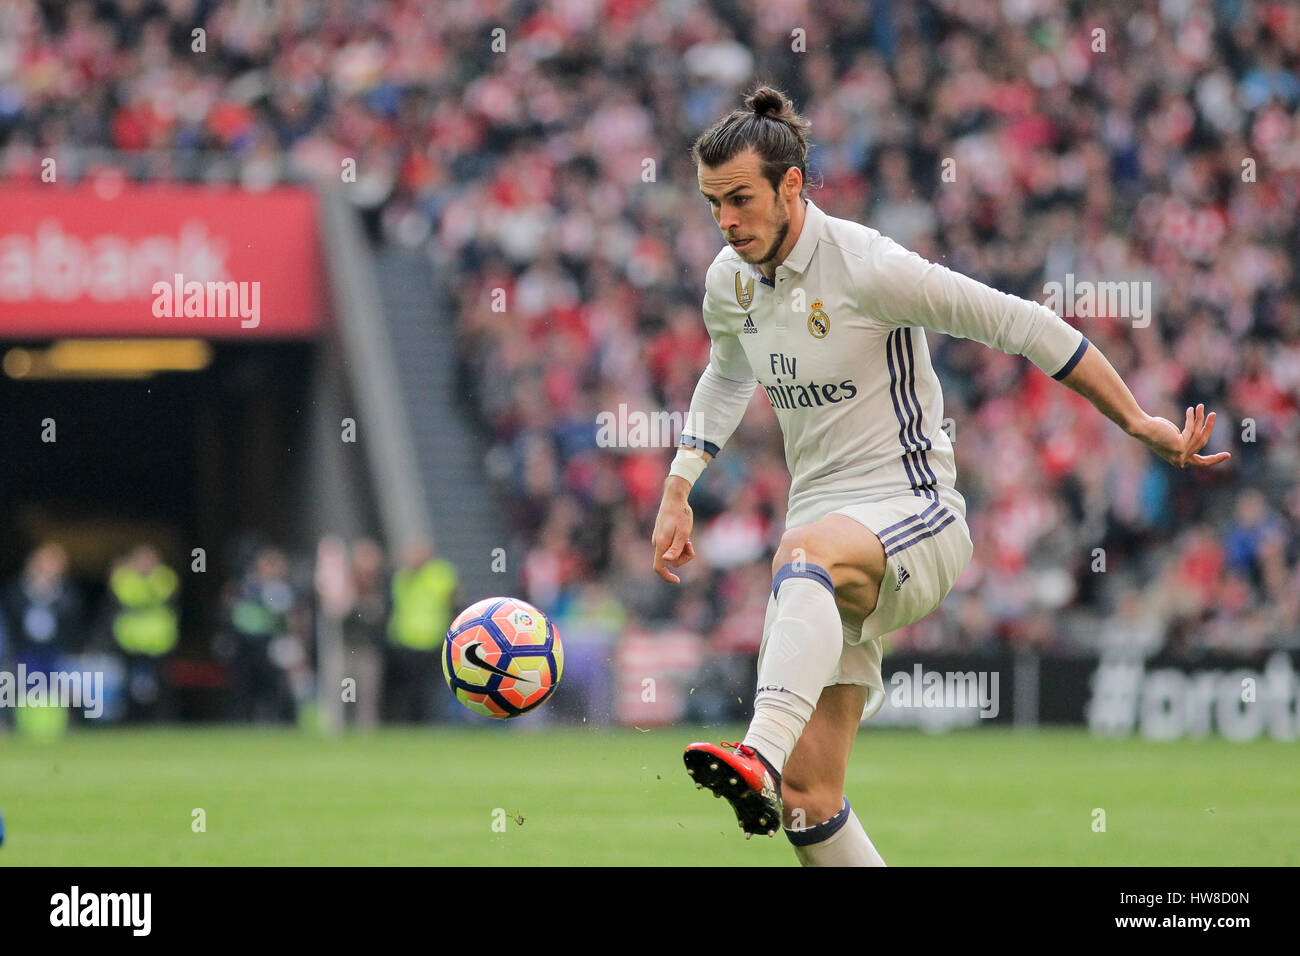 bilbao vizcaya spain 18th march 2017 gareth bale controlling